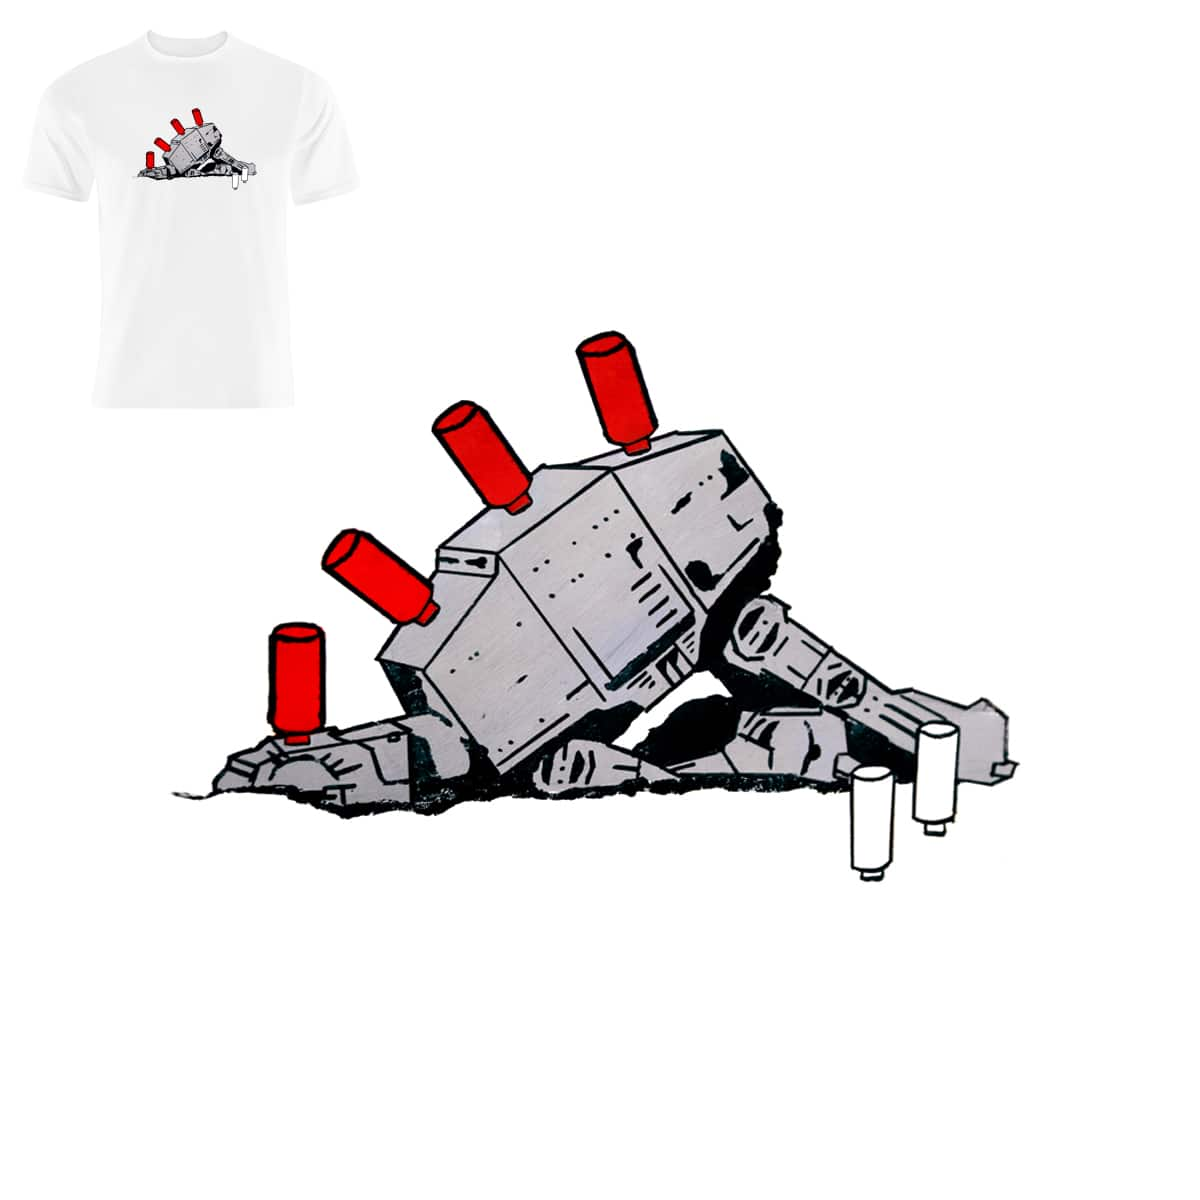 You Sunk My Imperial Walker! by Neematoad and CHAMPAKALI on Threadless